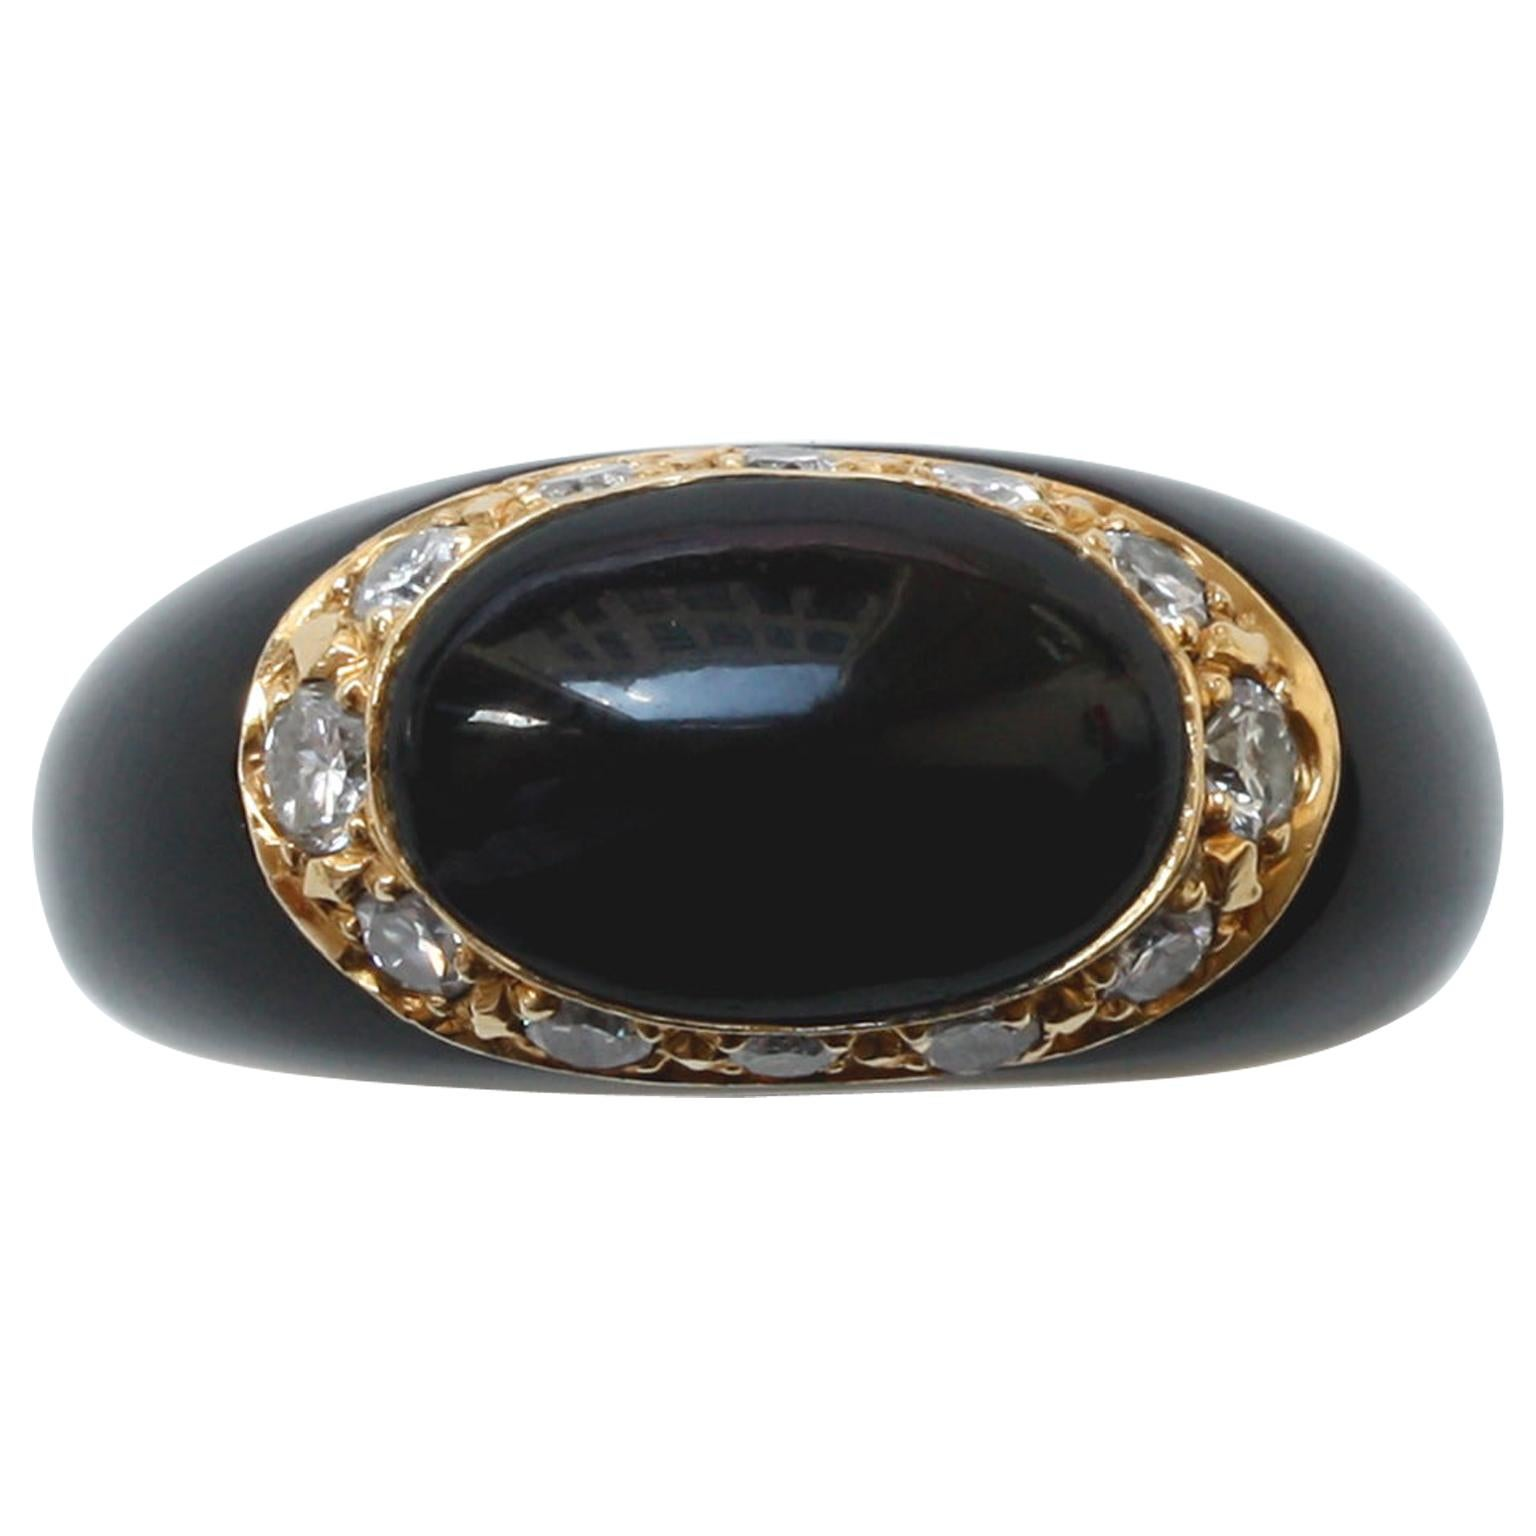 Van Cleef & Arpels 18 Karat Gold, Onyx and Diamond Fidji Ring